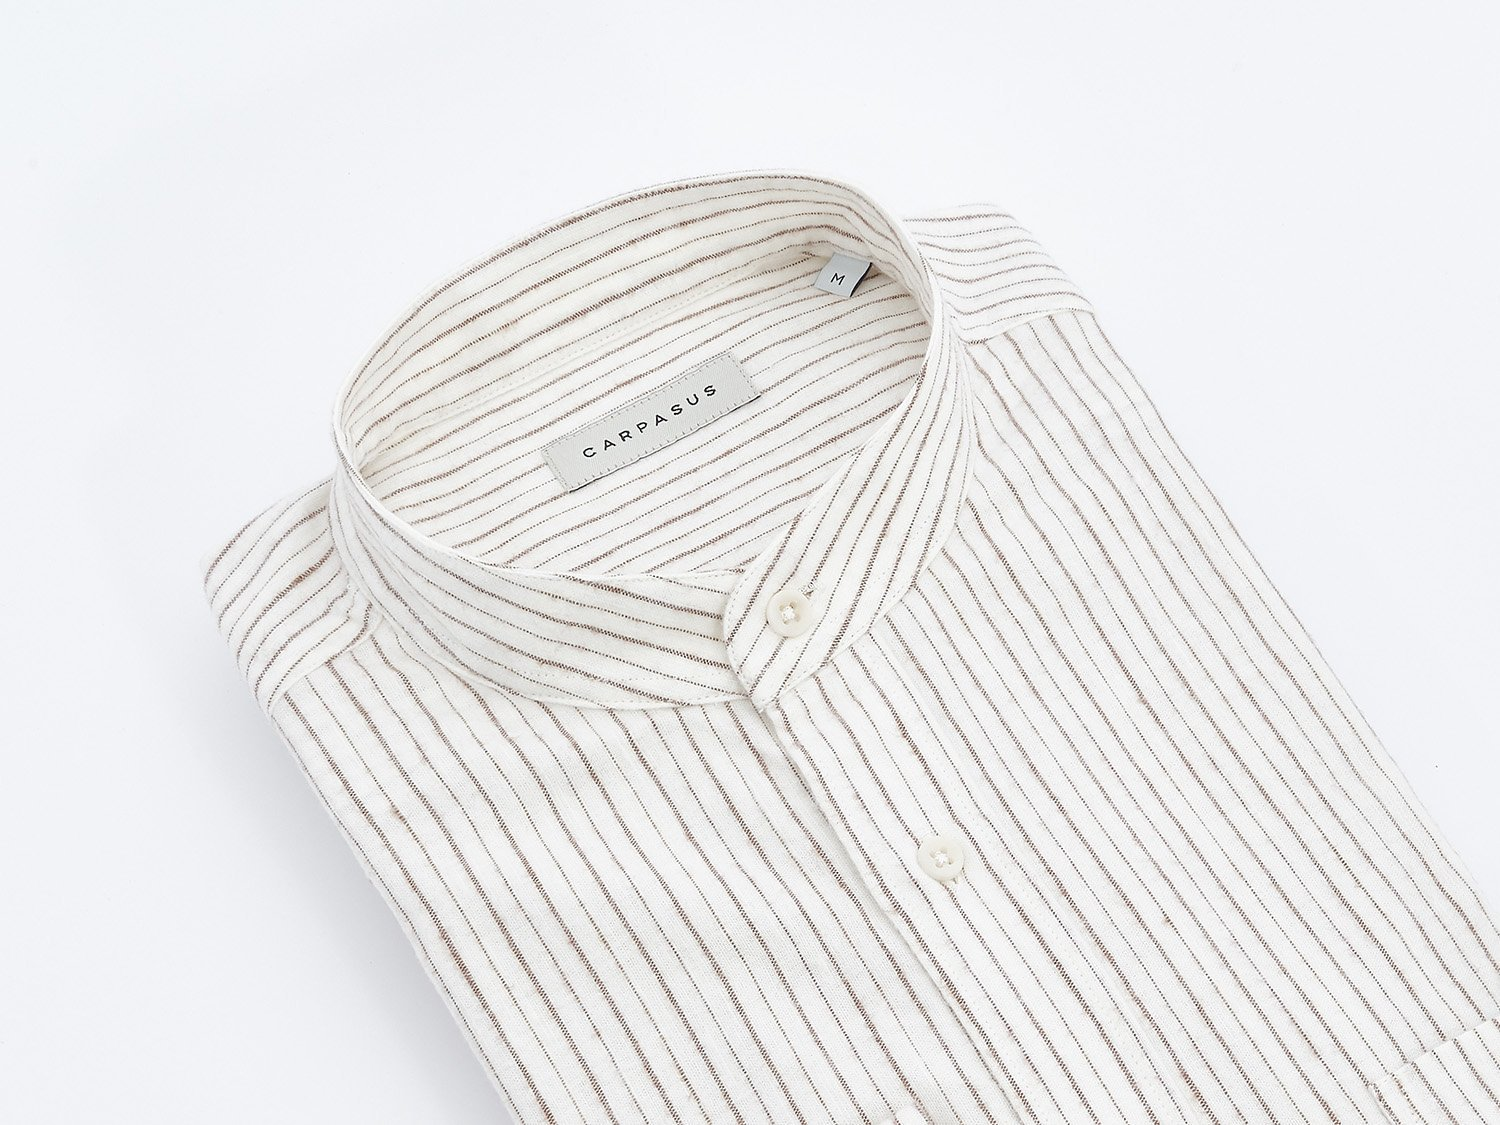 carpasus sustainable organic cotton and linen shirt scurido white/brown. Nachhaltiges Carpasus Hemd Scurido aus Bio Baumwolle und Leinen in Weiss/Braun